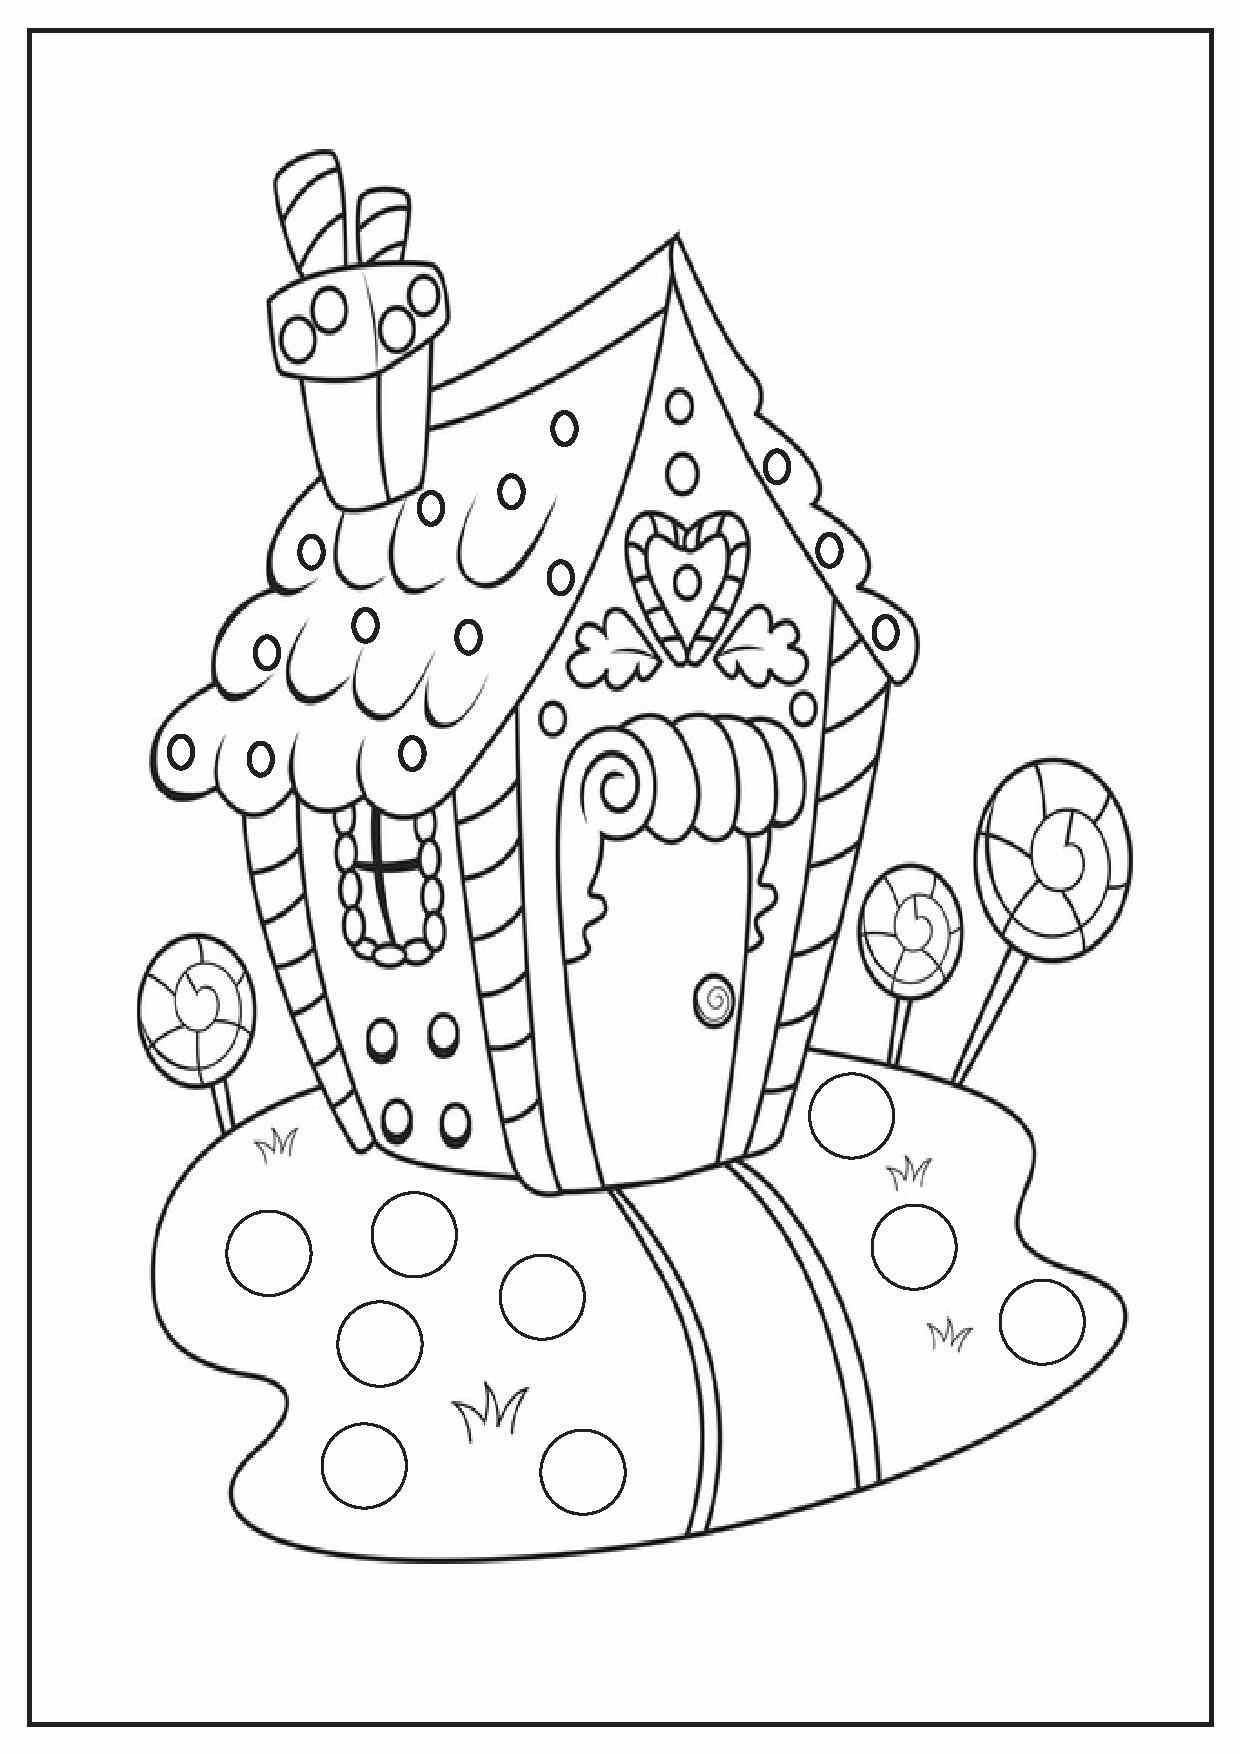 Christmas Coloring Pages For Kindergarten Students With Sheets Only